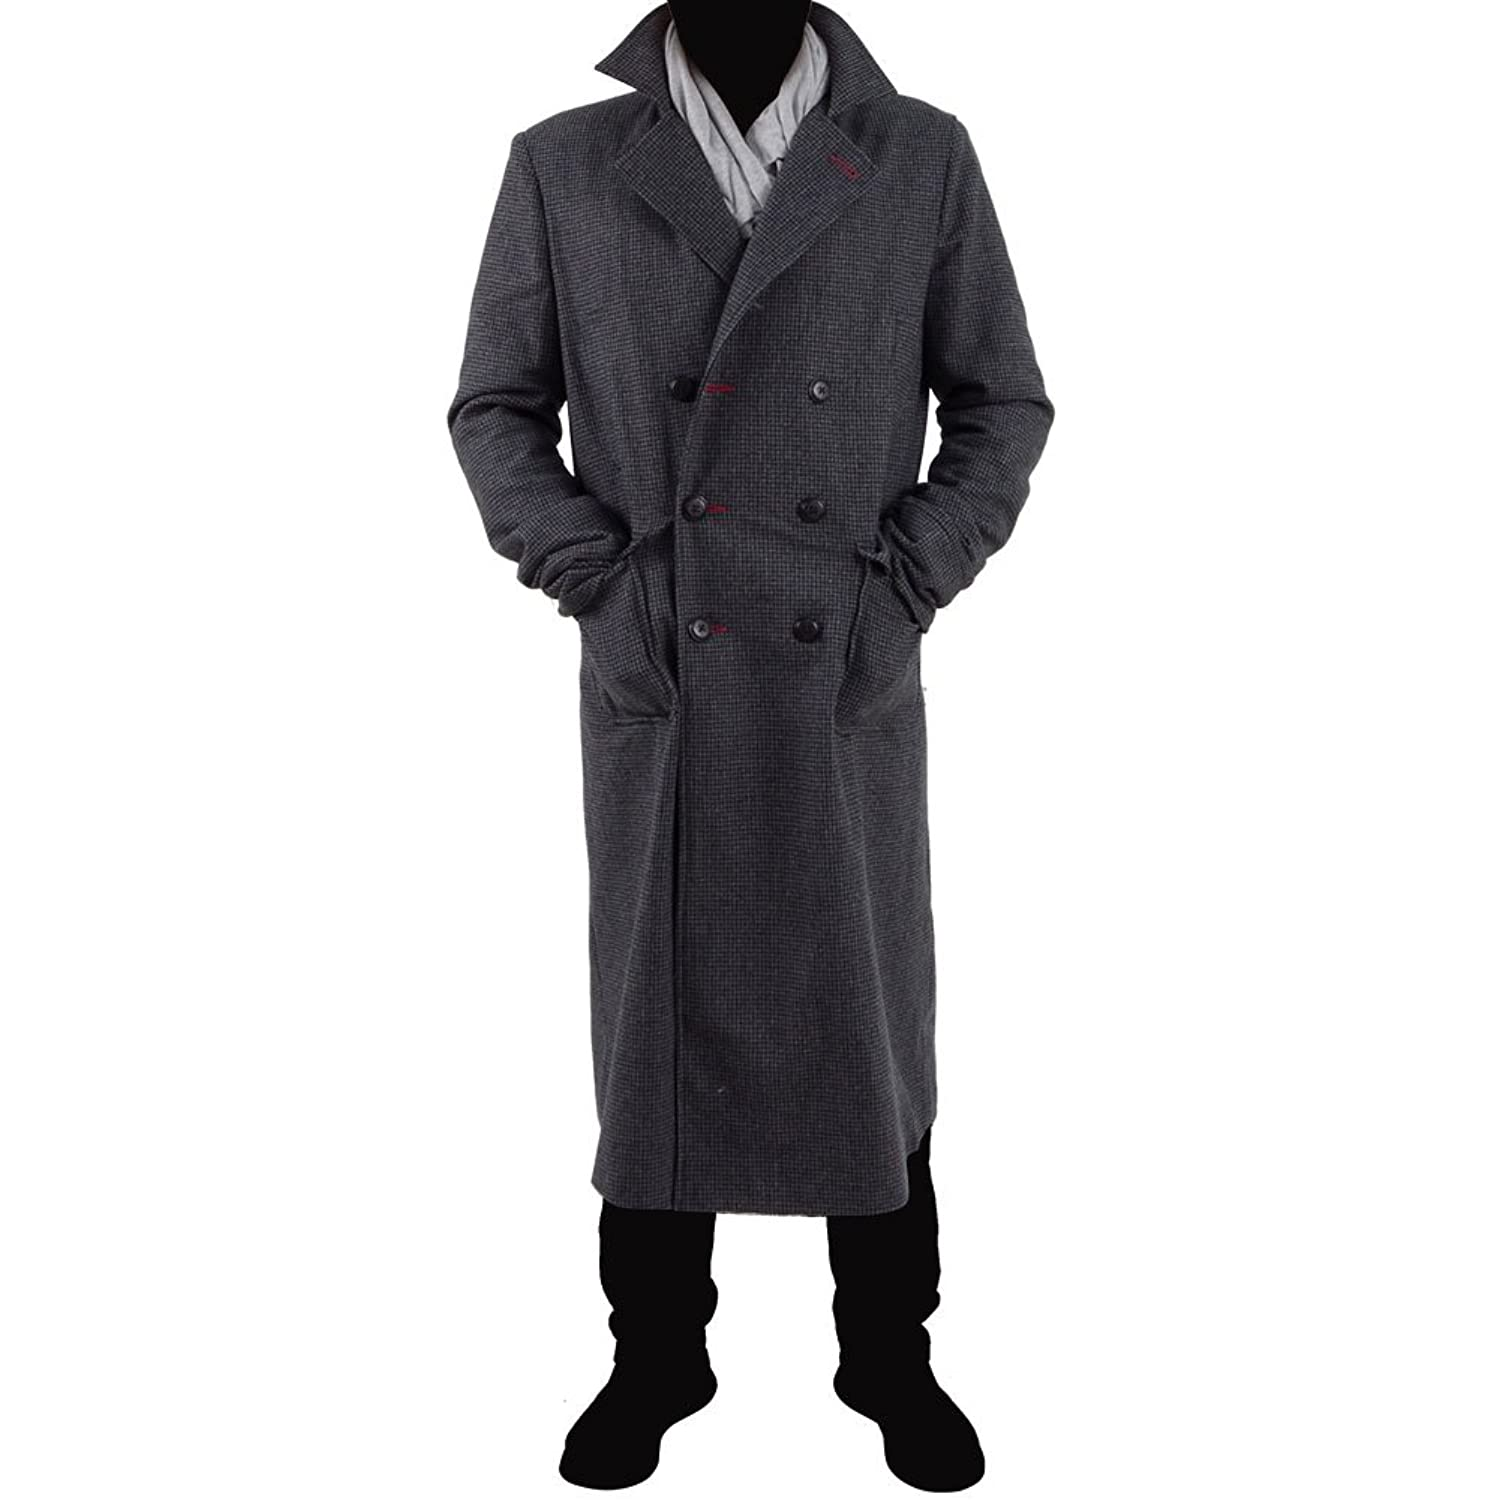 Retro Clothing for Men | Vintage Men's Fashion Mens Plaids And Tweeds Long Trench Coat Halloween Cosplay Costume Overcoat $100.00 AT vintagedancer.com